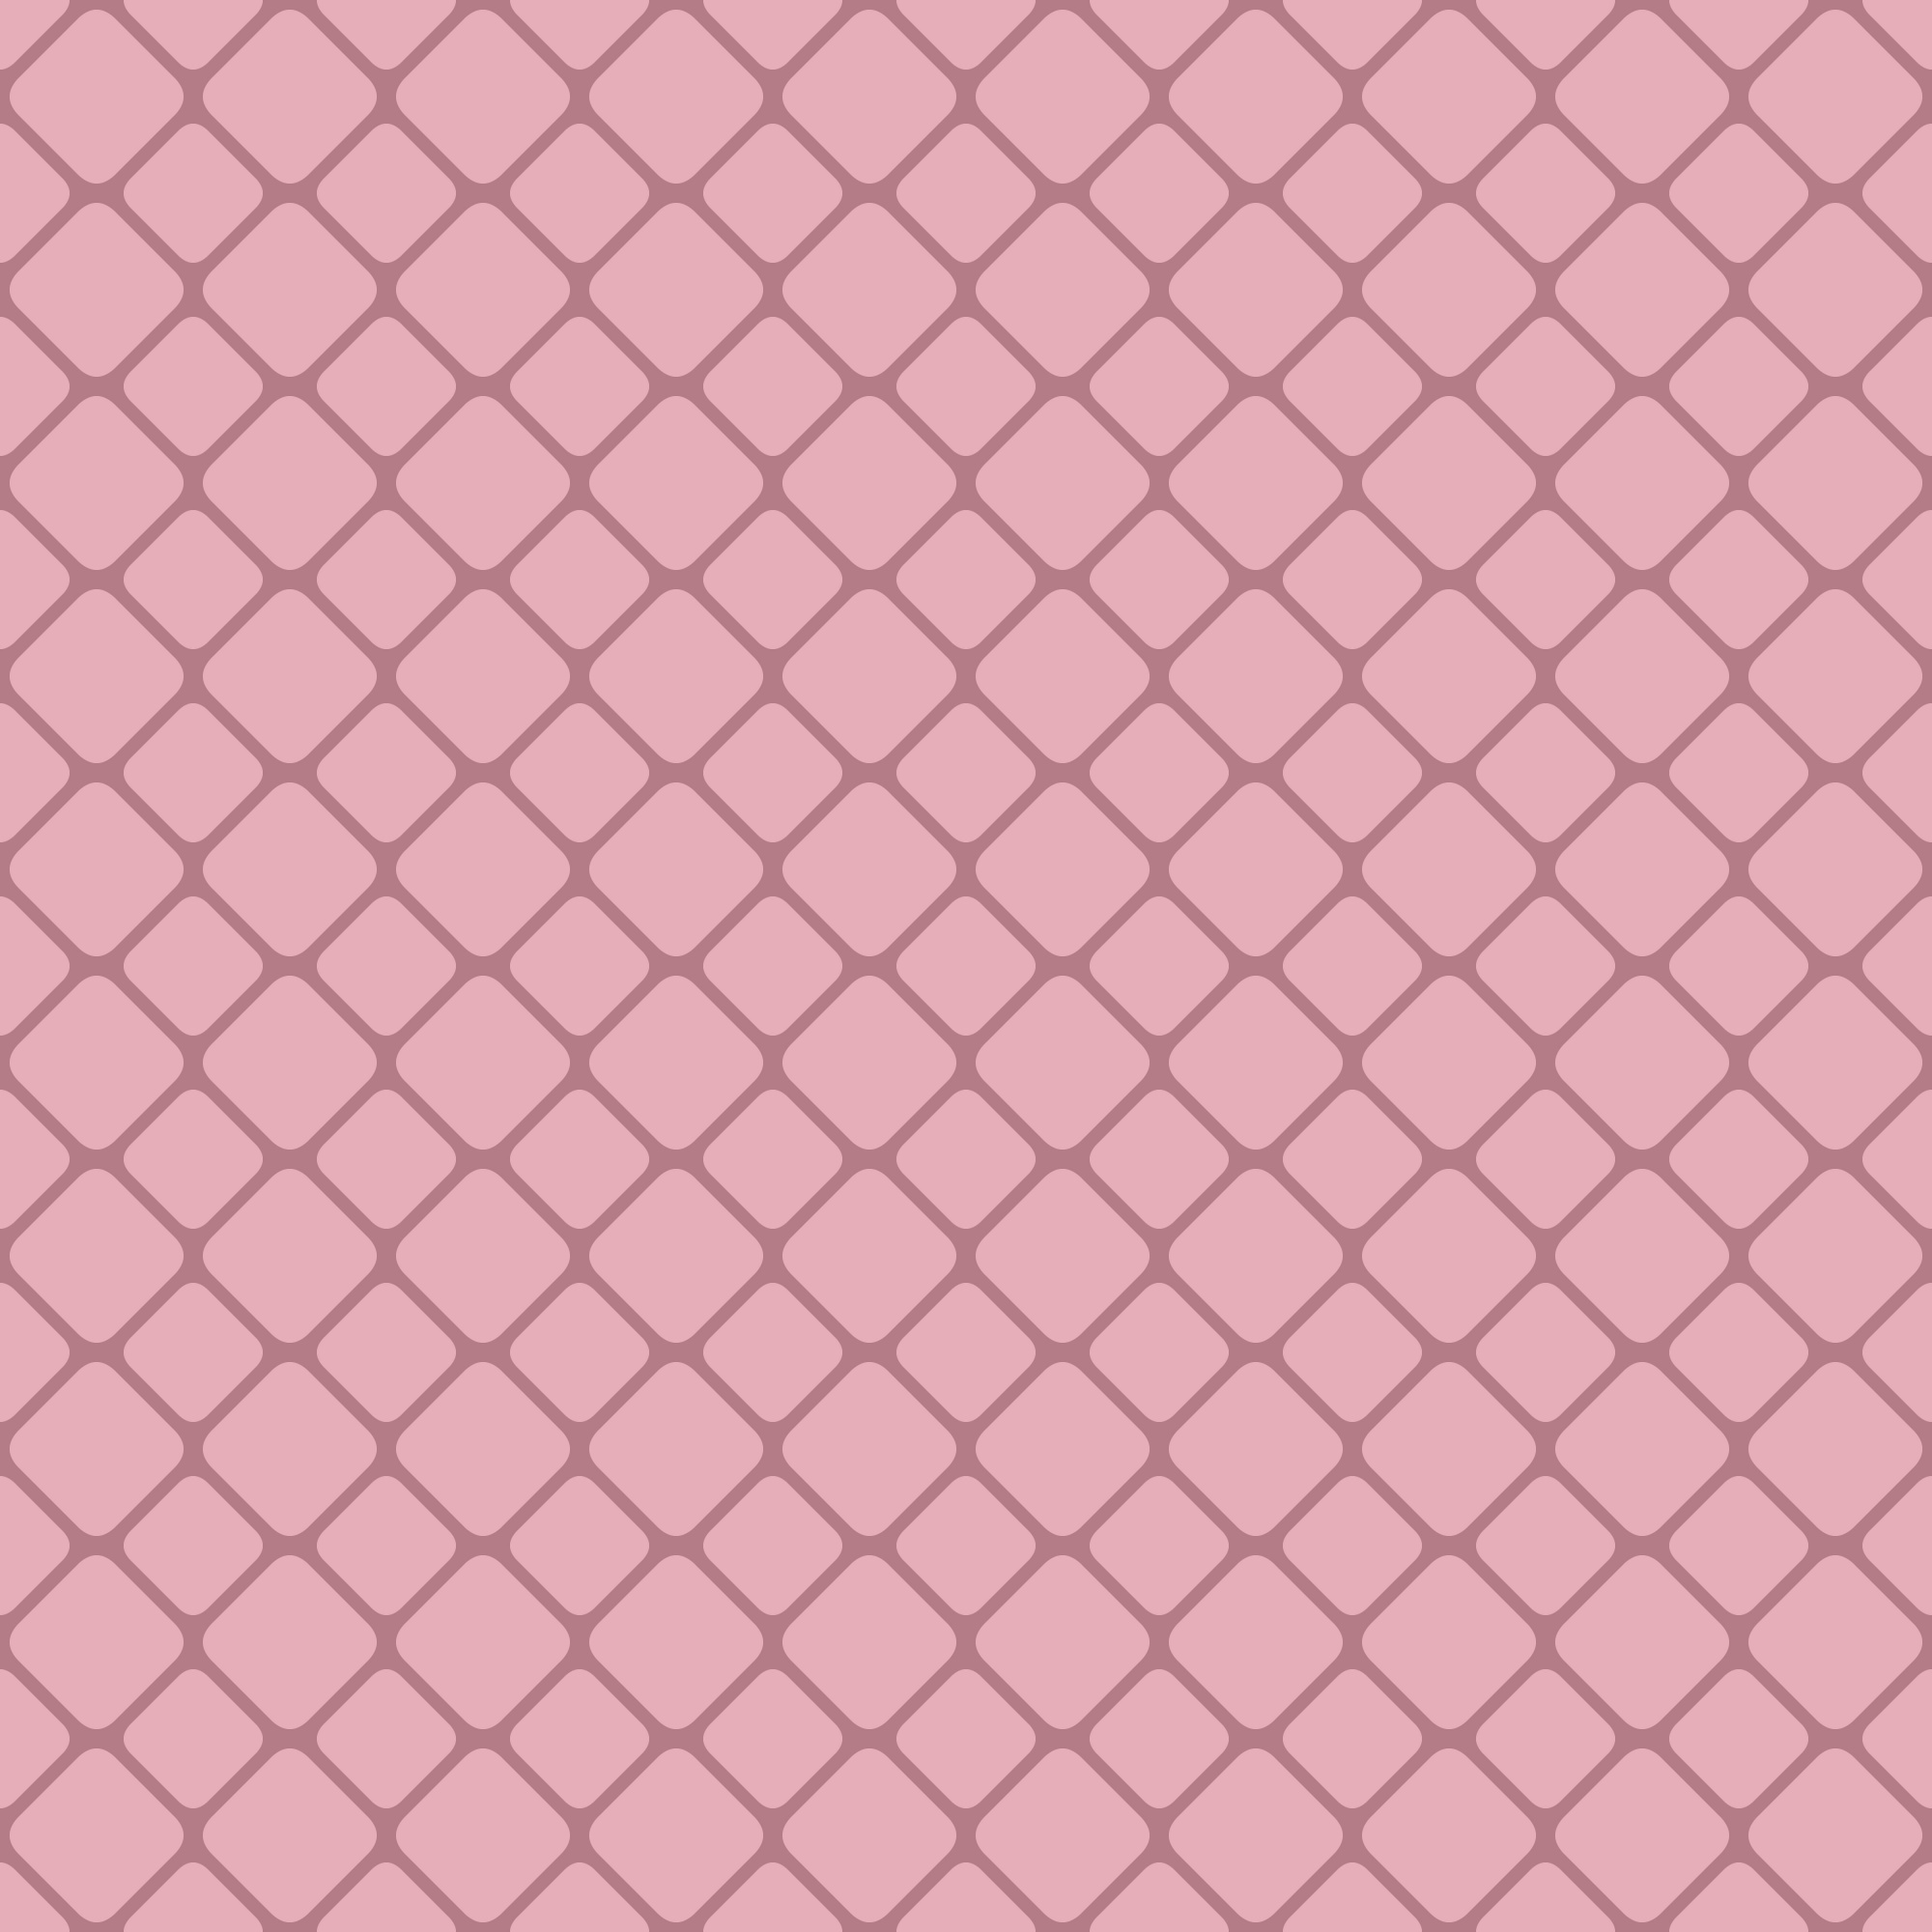 Pink abstract seamless rounded square grid pattern background design - design gráfico de vetores